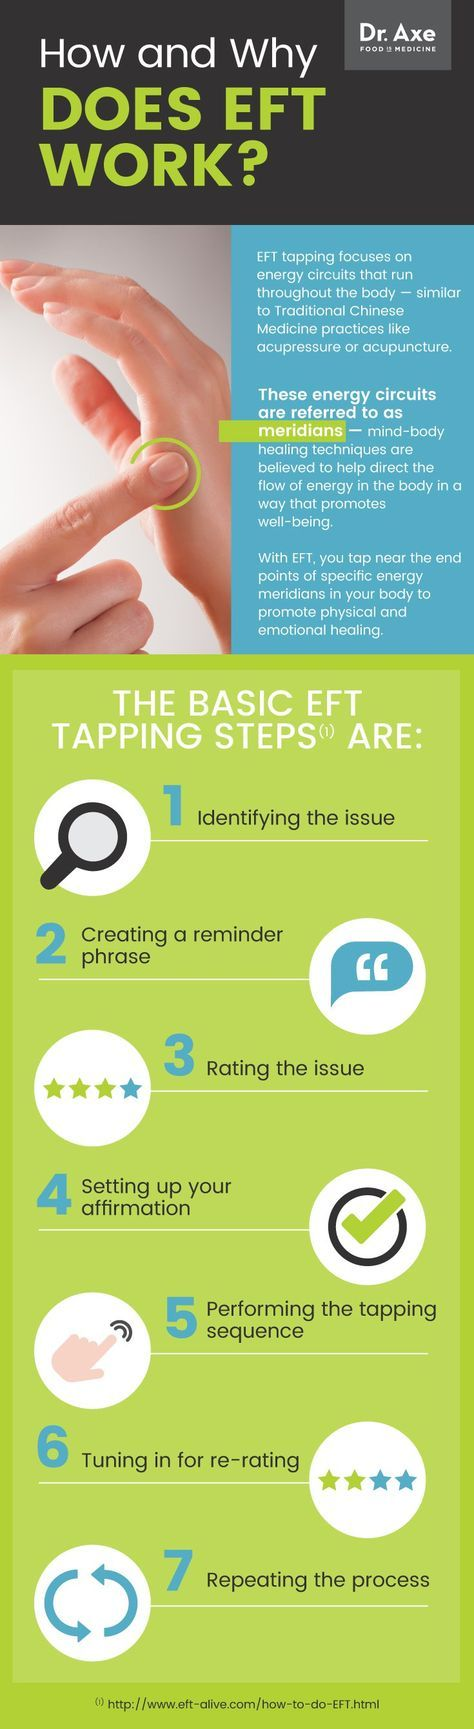 27 best EFT Tapping images on Pinterest | Eft tapping, Acupressure ...